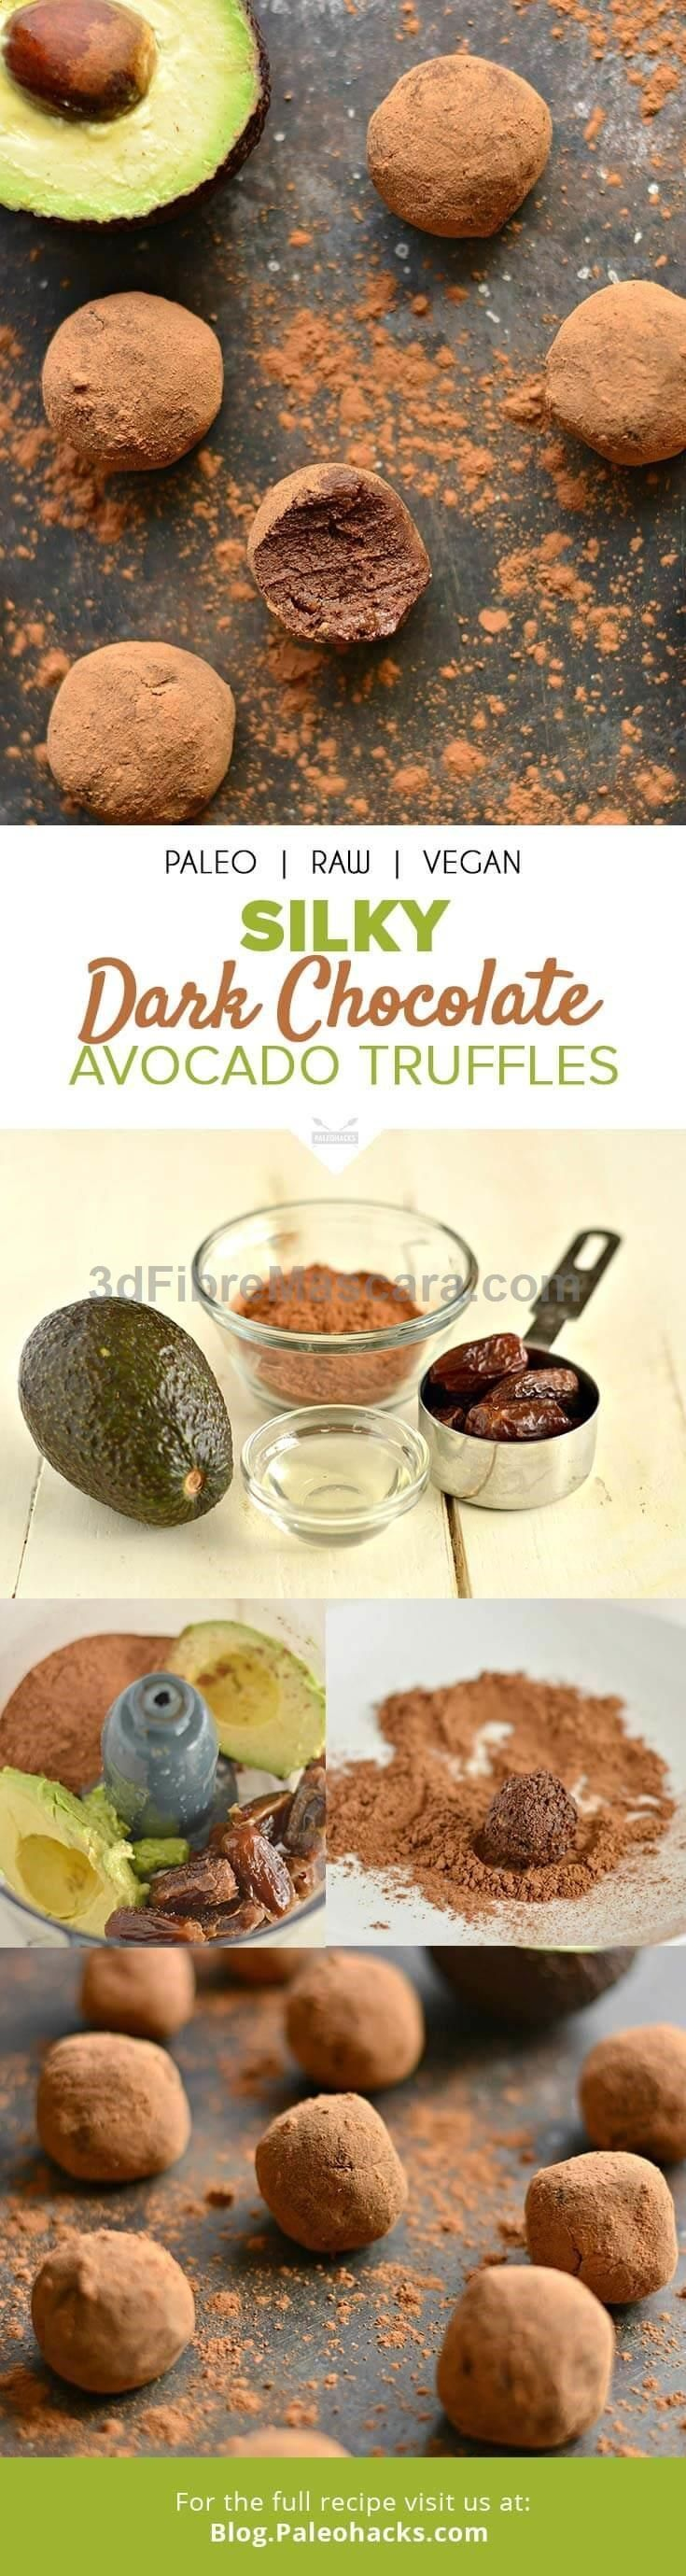 The secret behind these creamy chocolate truffles that taste sinfully good? A powerful, healthy ingredient: avocado! Get the recipe here: paleo.co/...